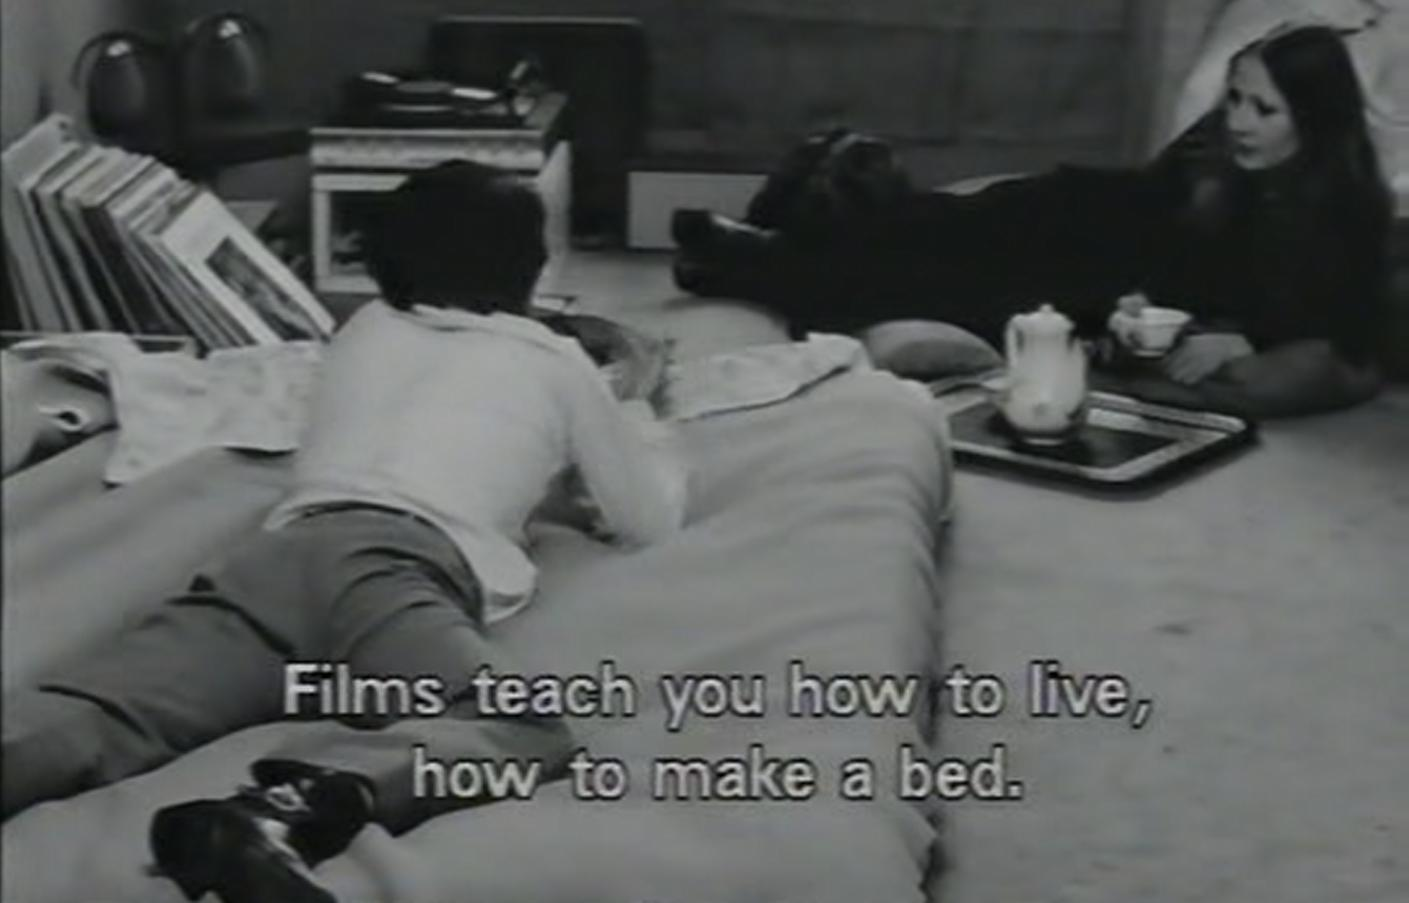 Films teach you